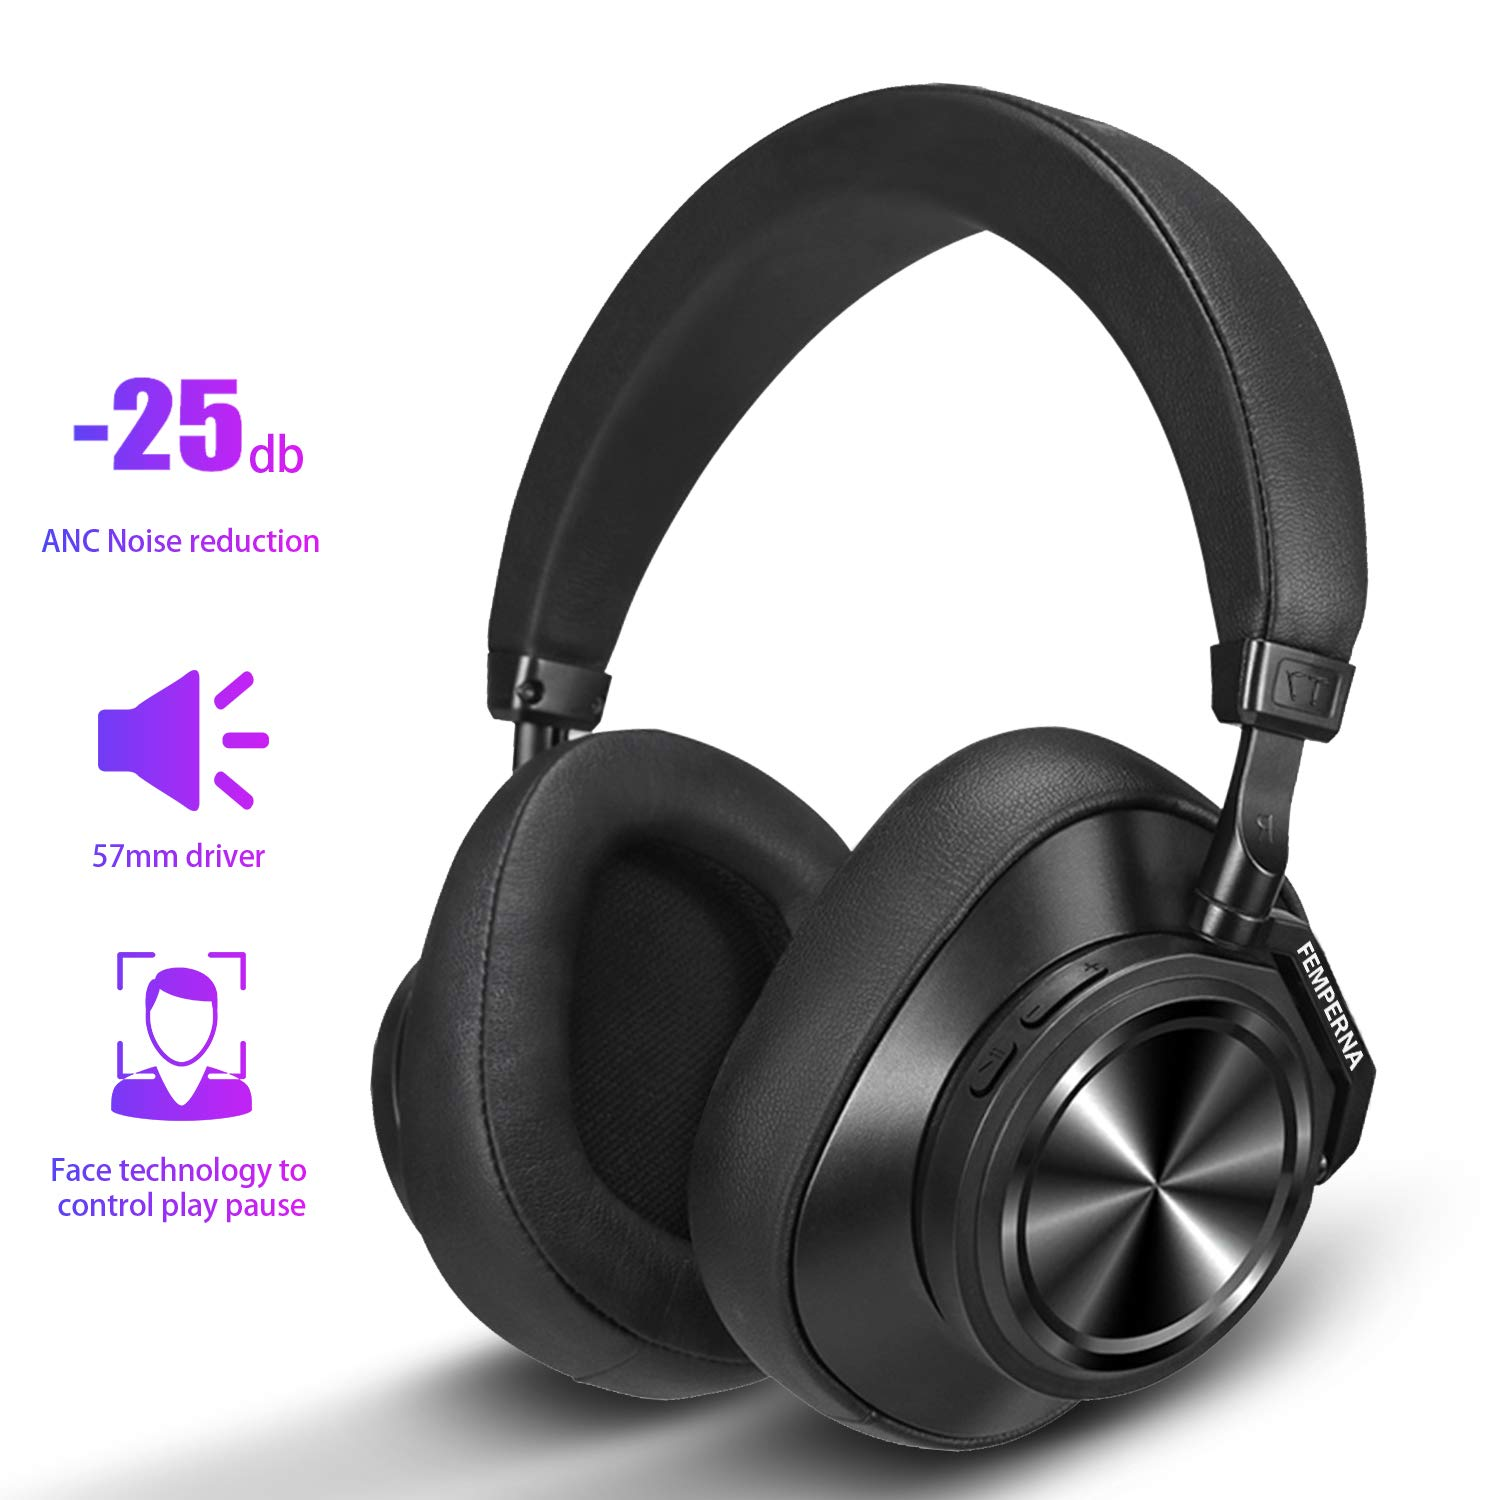 Active Noise Cancelling Headphones Wireless Over Ear Headphones, FEMPERNA Bluetooth Headphones with Microphone, Hi-Fi Sound Deep Bass, Soft Protein Earpads, 30H Playtime for Work Travel